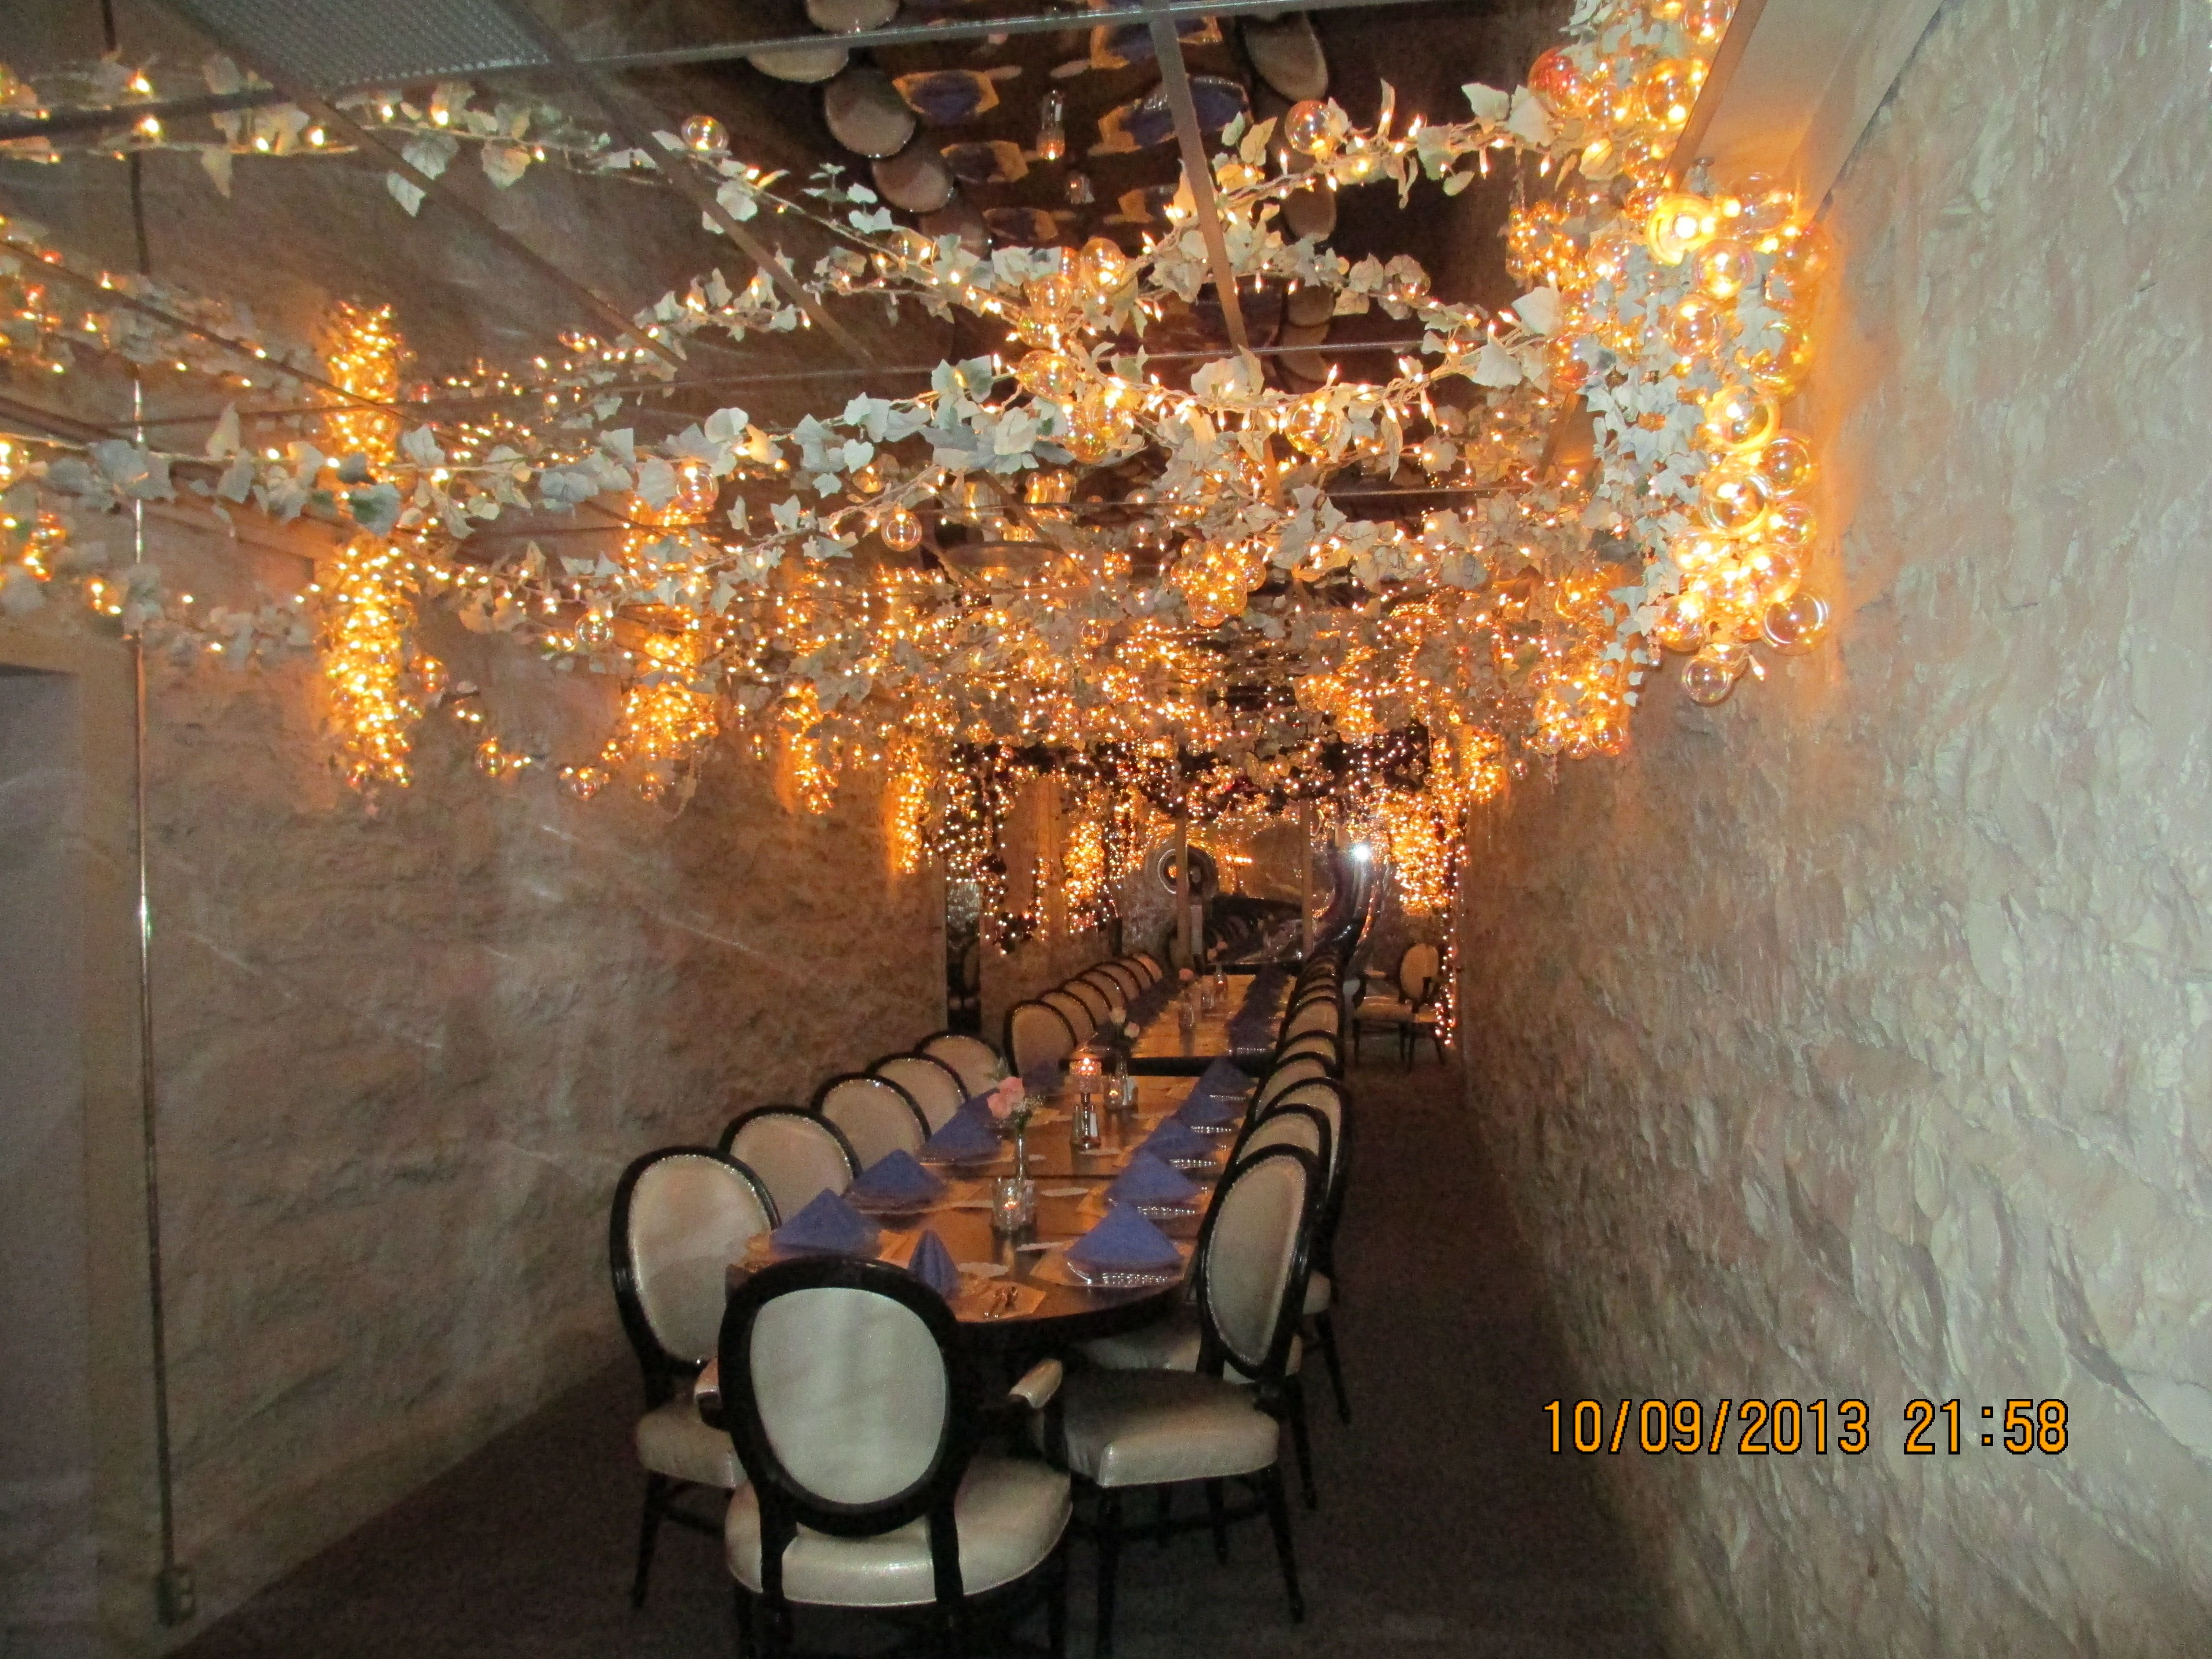 Daily dream home your private castle hotel in versailles kentucky - The Glitz In The Basement Of Irish Acres In Versailles Ky